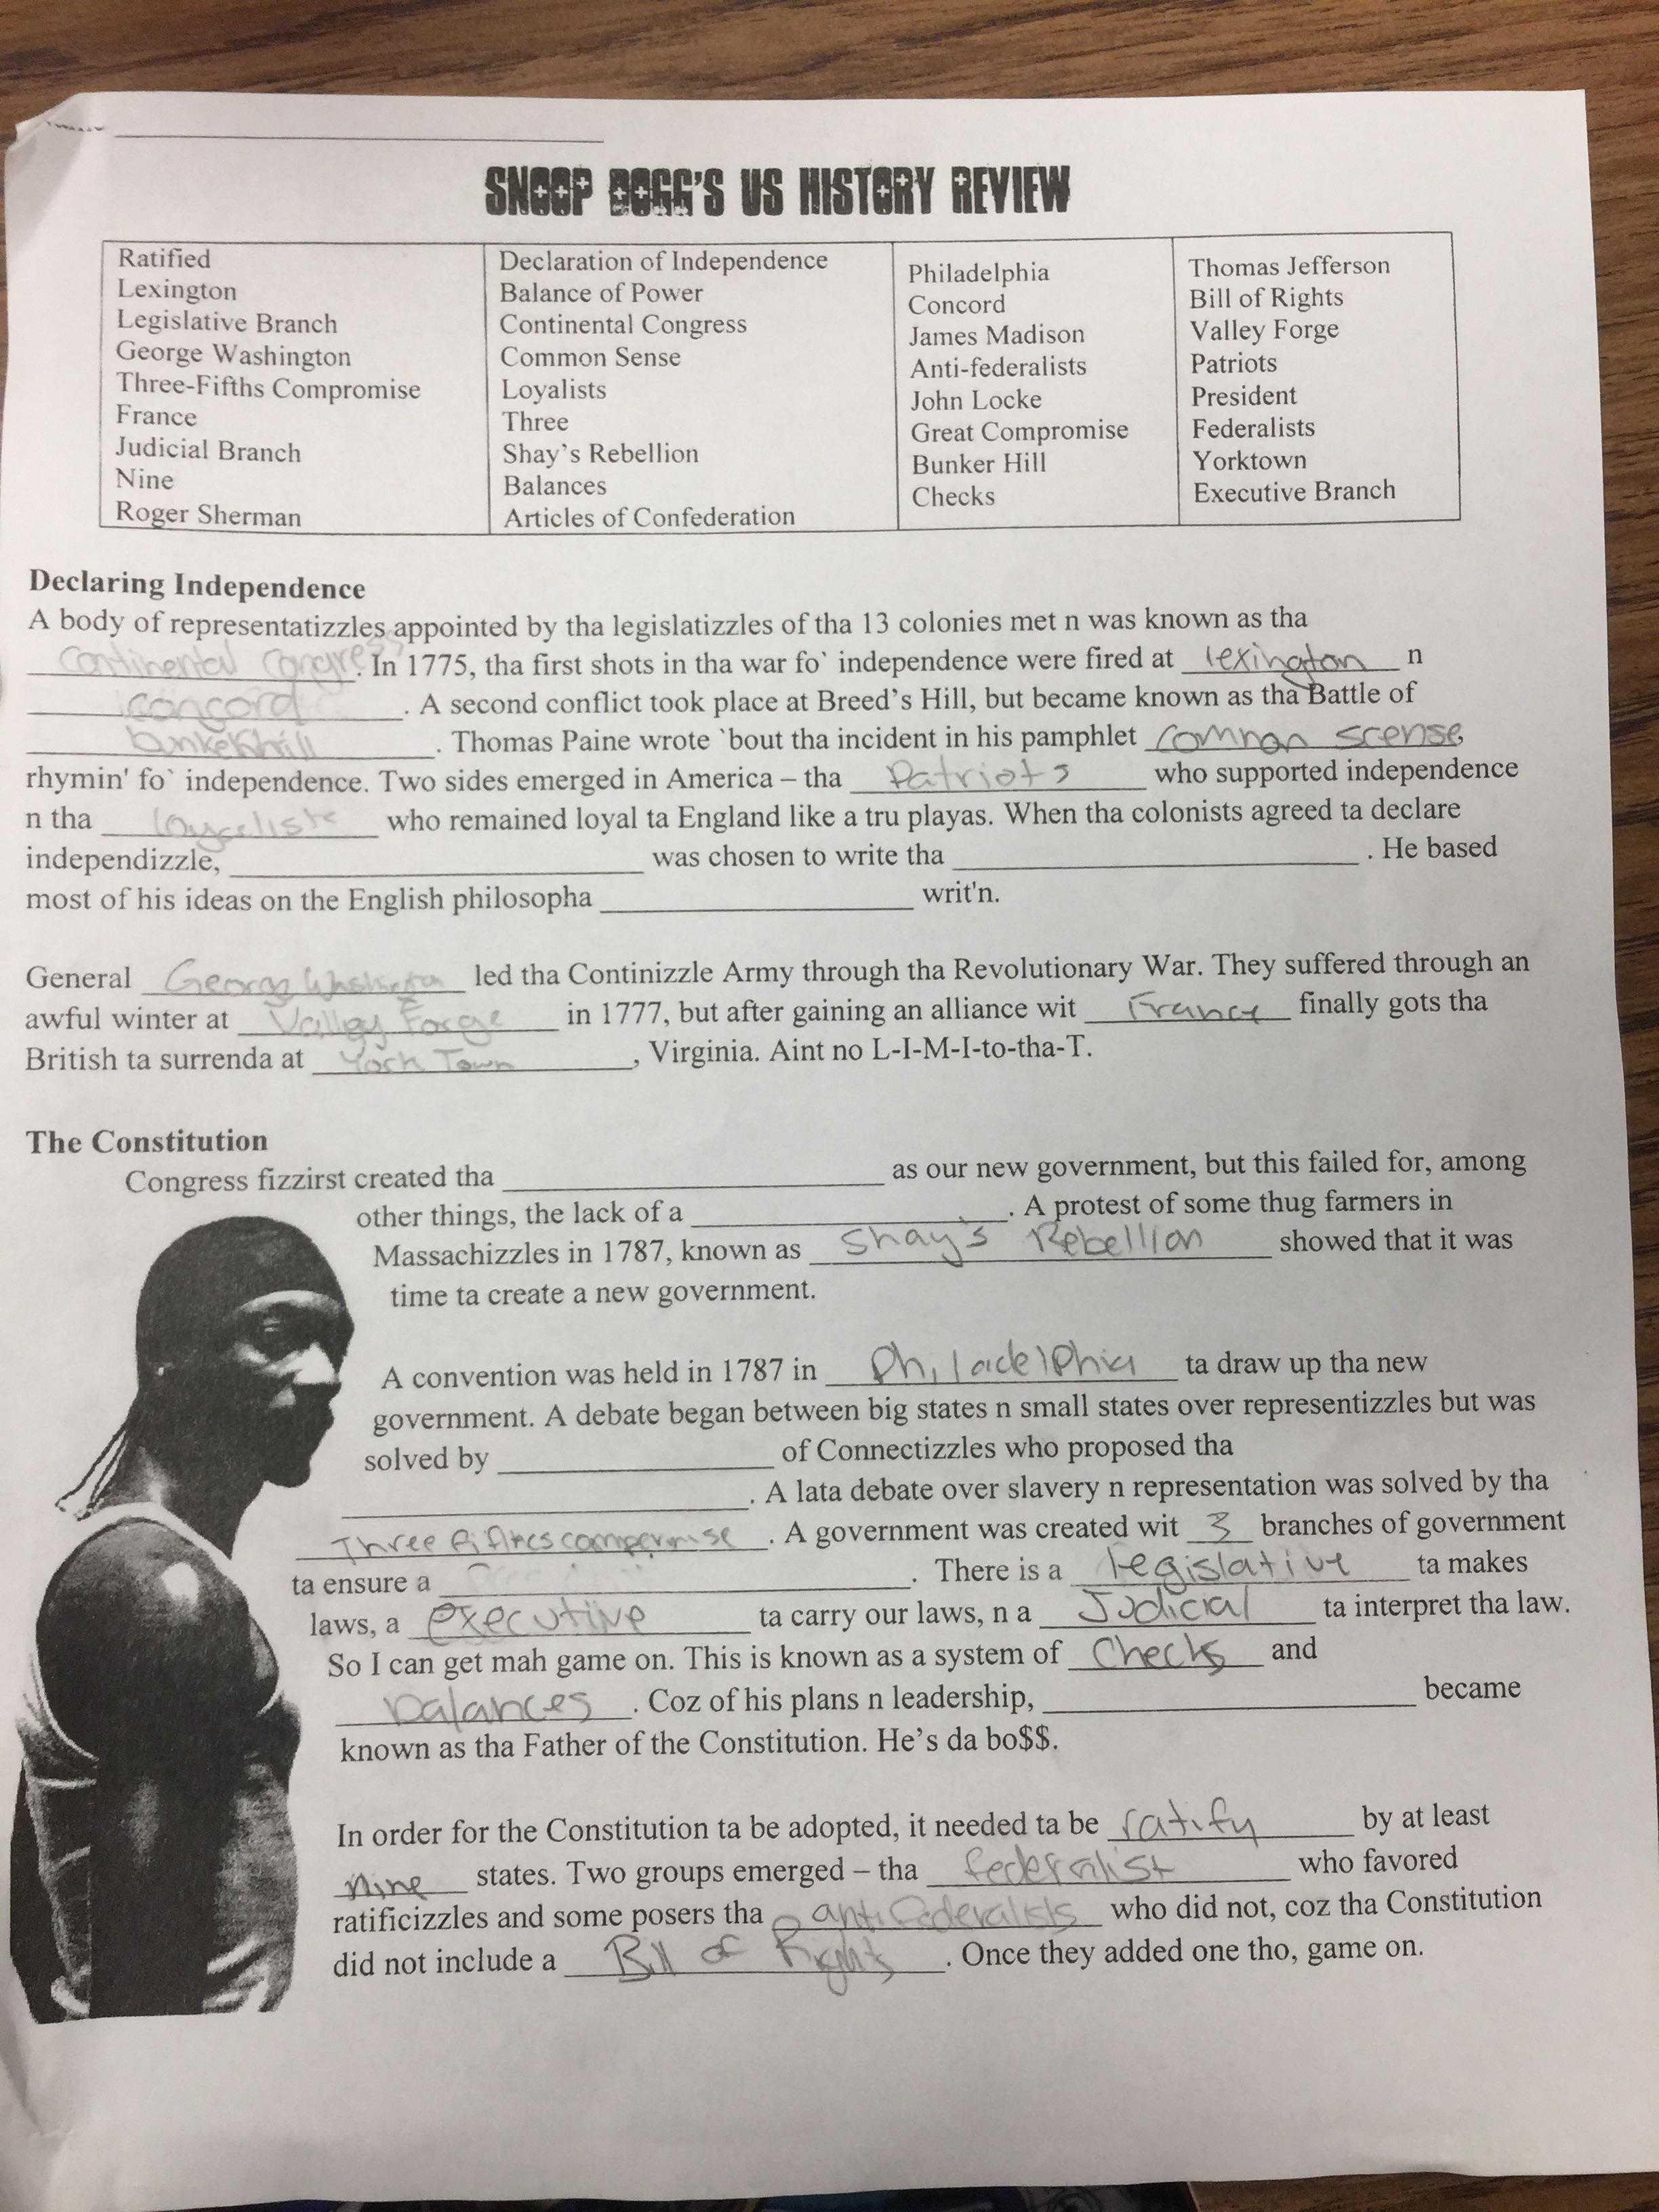 Snoop Dogg World History Review Worksheet Answers